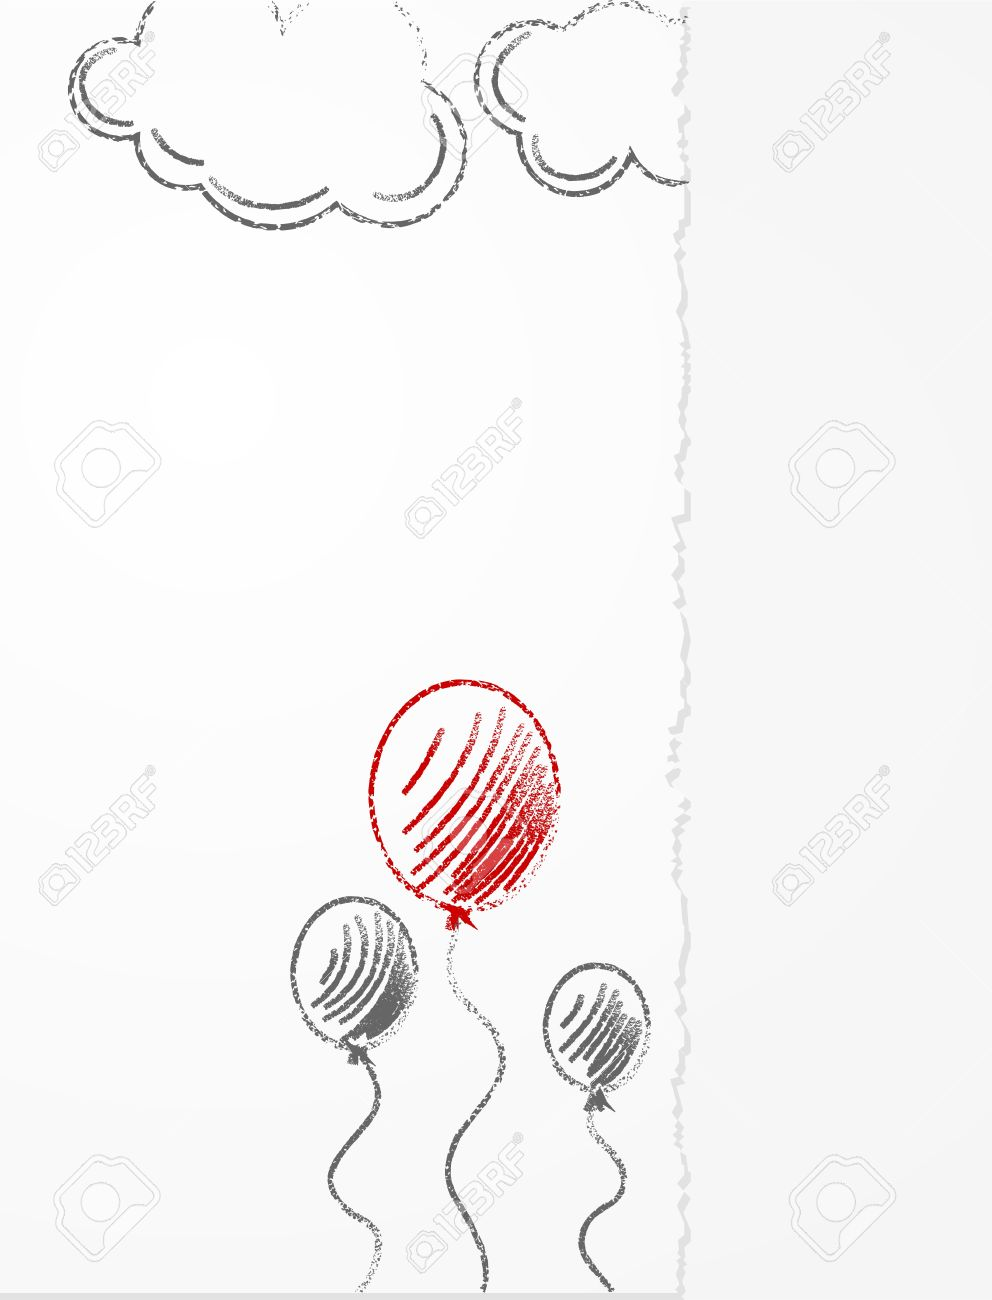 Pencil Drawing On Paper Balloons And Clouds